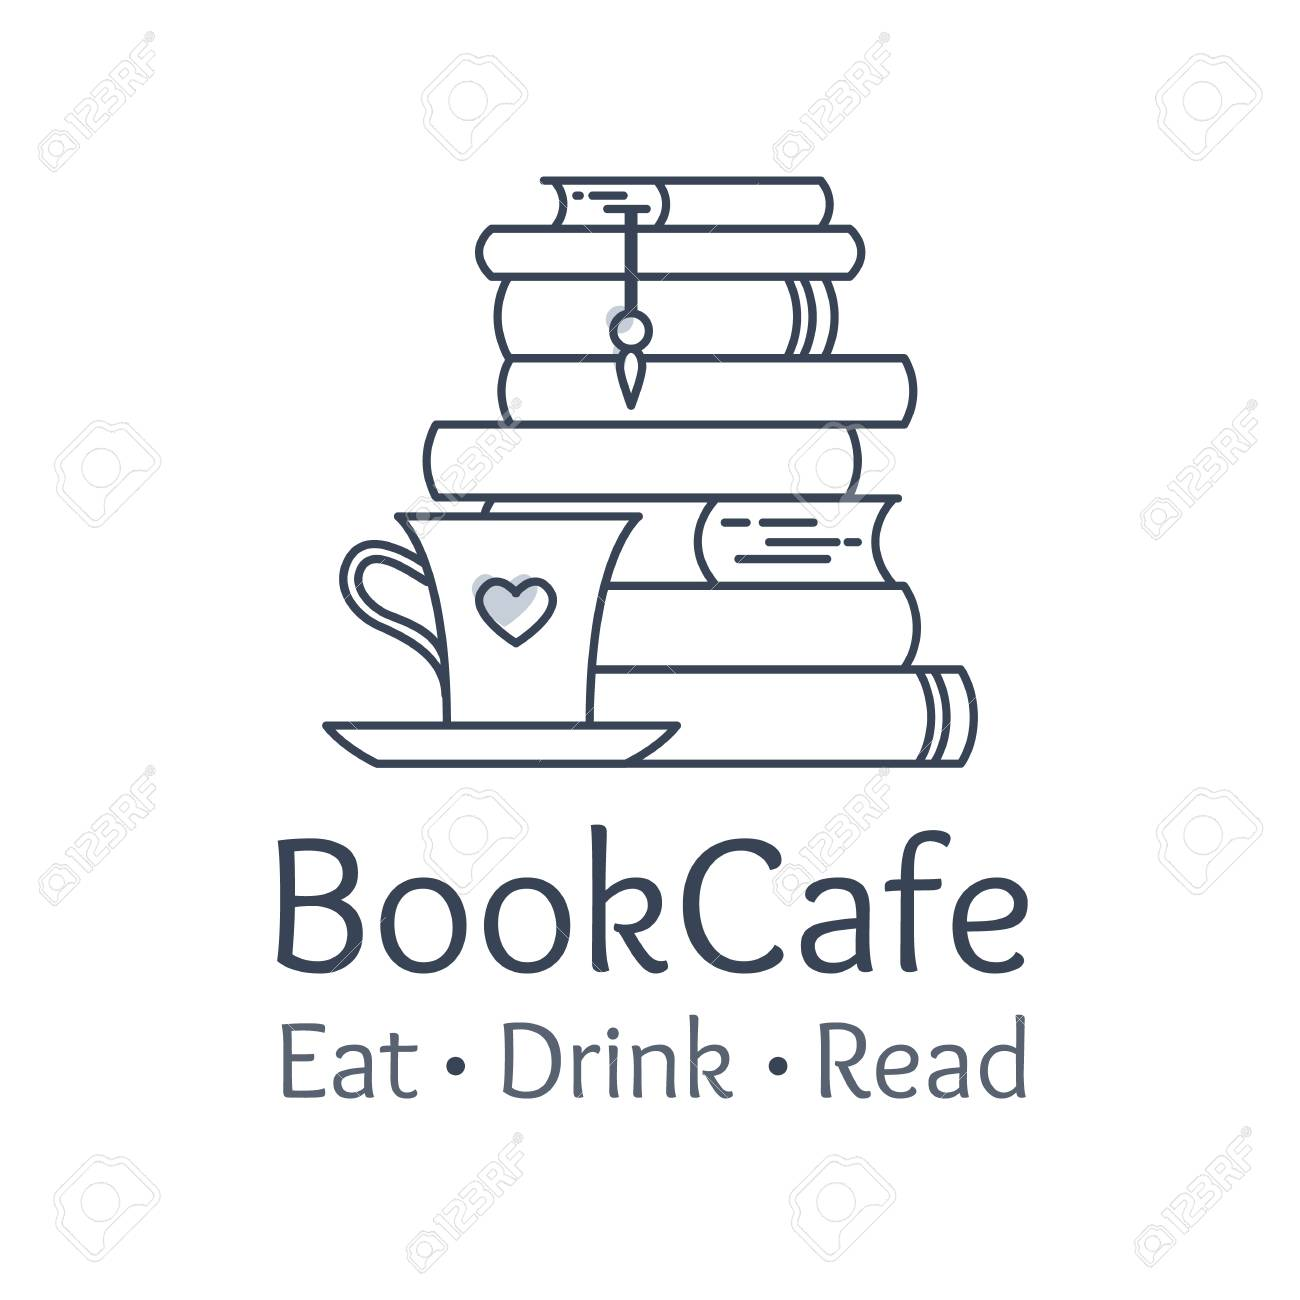 Bookstore And Cafe Visual Identity Logo Element Flat Line Style